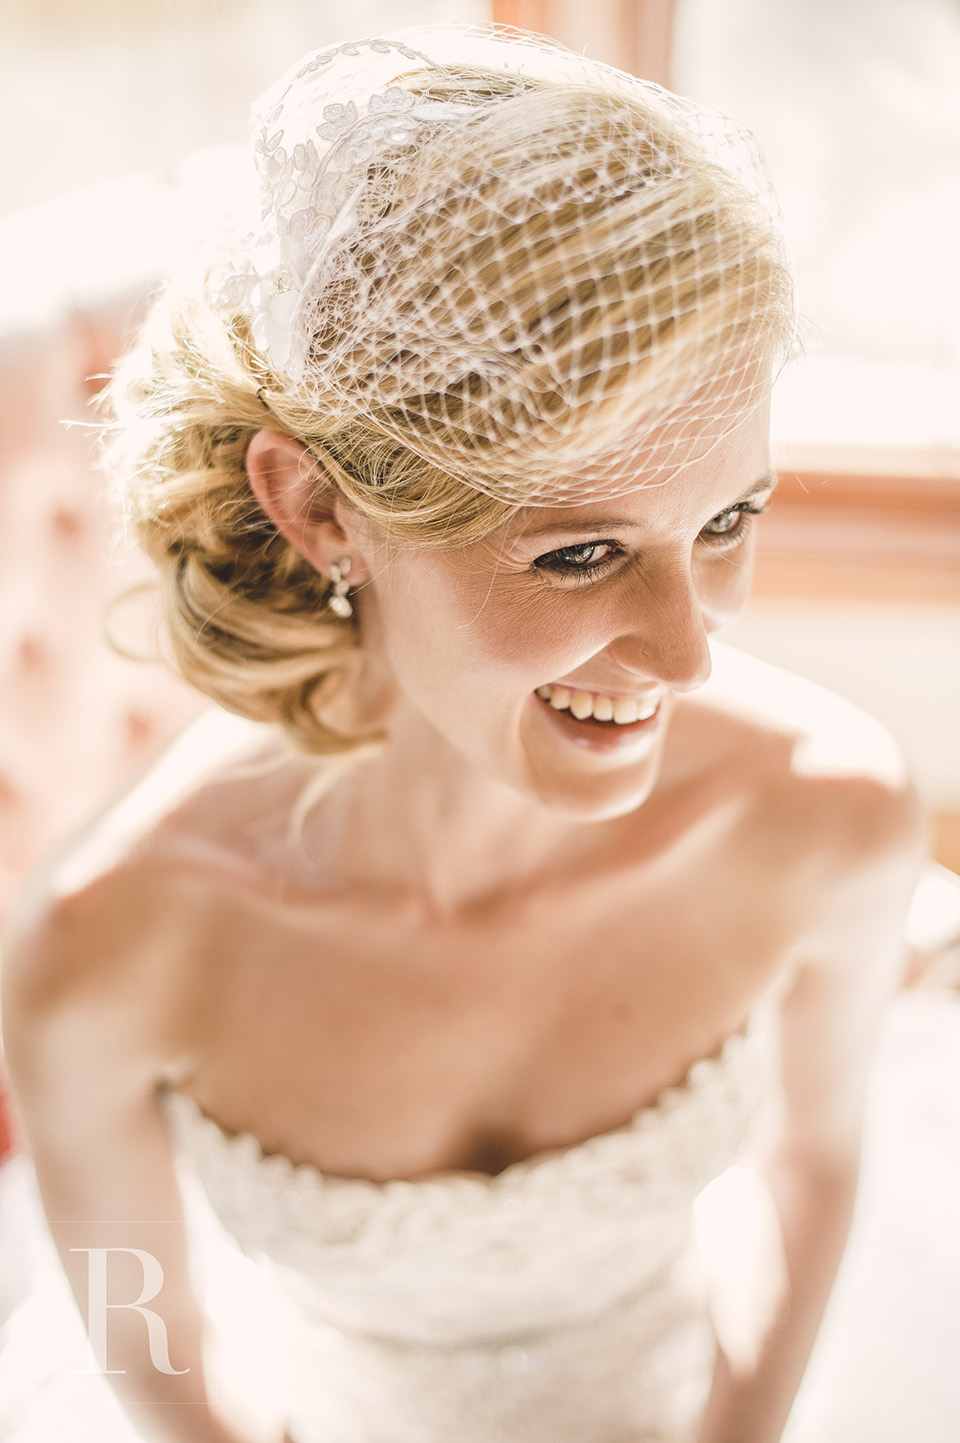 RYAN PARKER PHOTOGRAPHY_WEDDINGS_JOHANNESBURG_MORRELLS_M&M DSC_2657.jpg